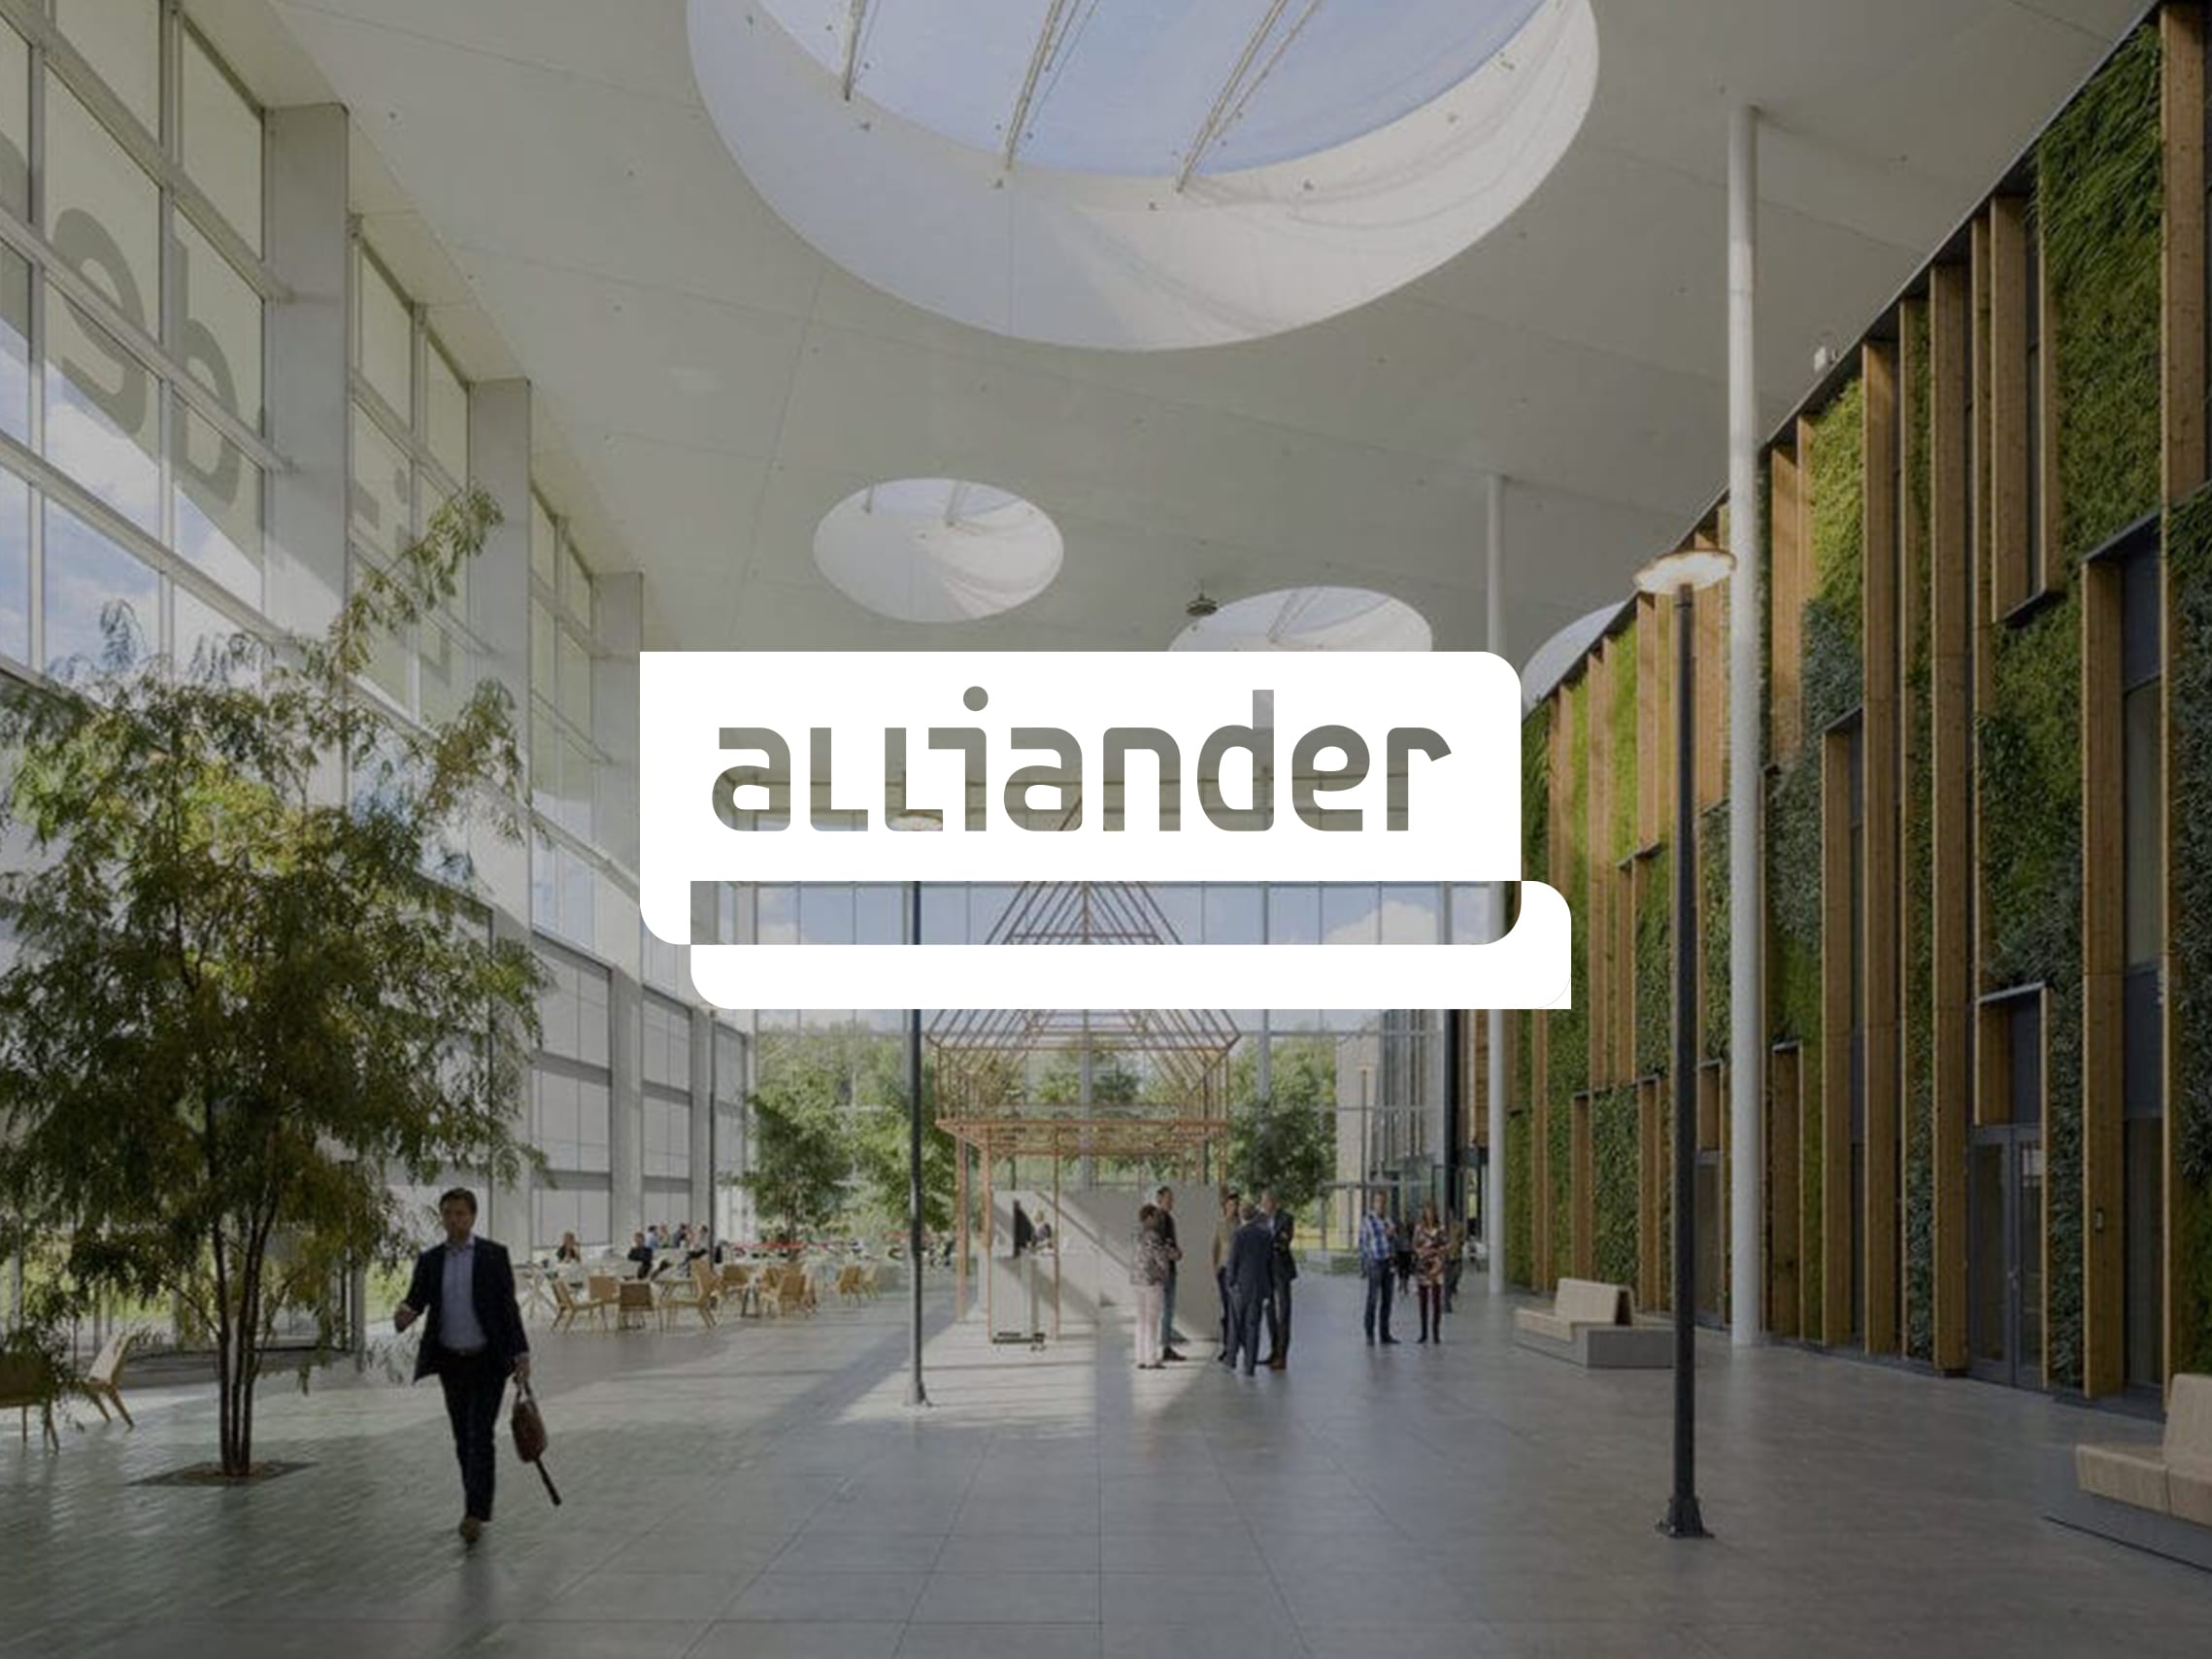 Alliander: A transition to succes